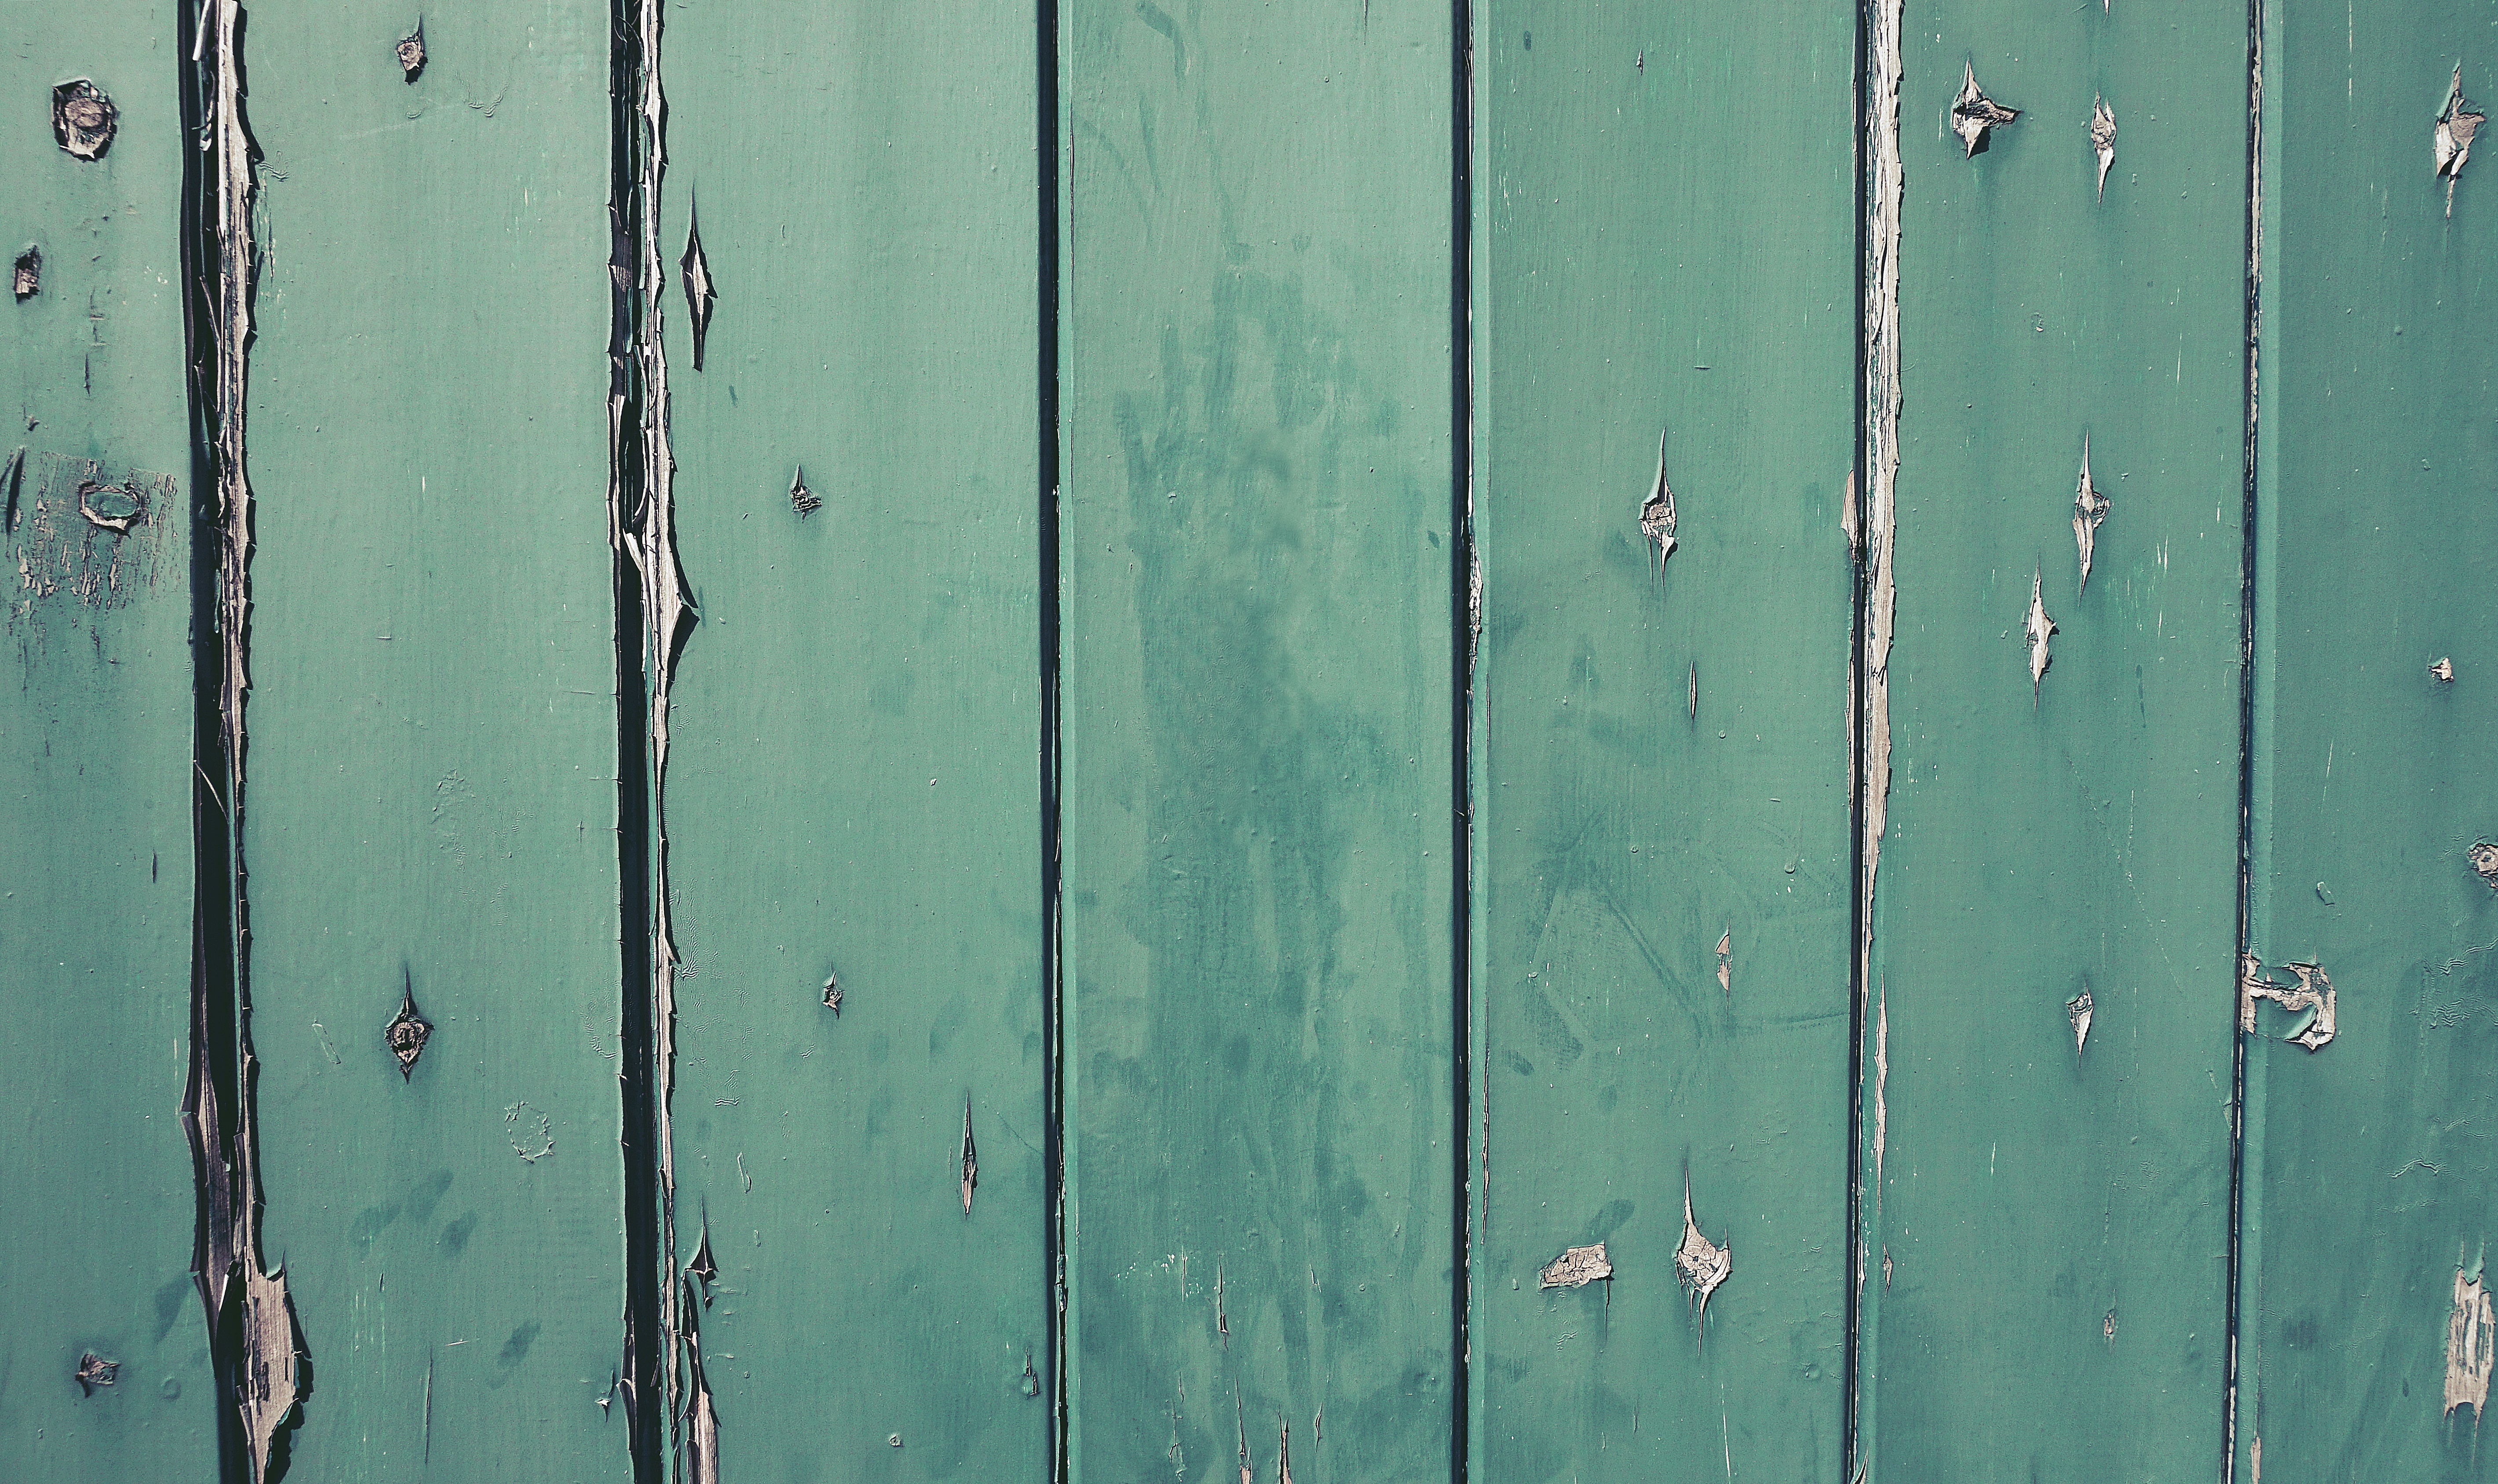 132974 download wallpaper Textures, Texture, Planks, Board, Wood, Wooden, Paint screensavers and pictures for free